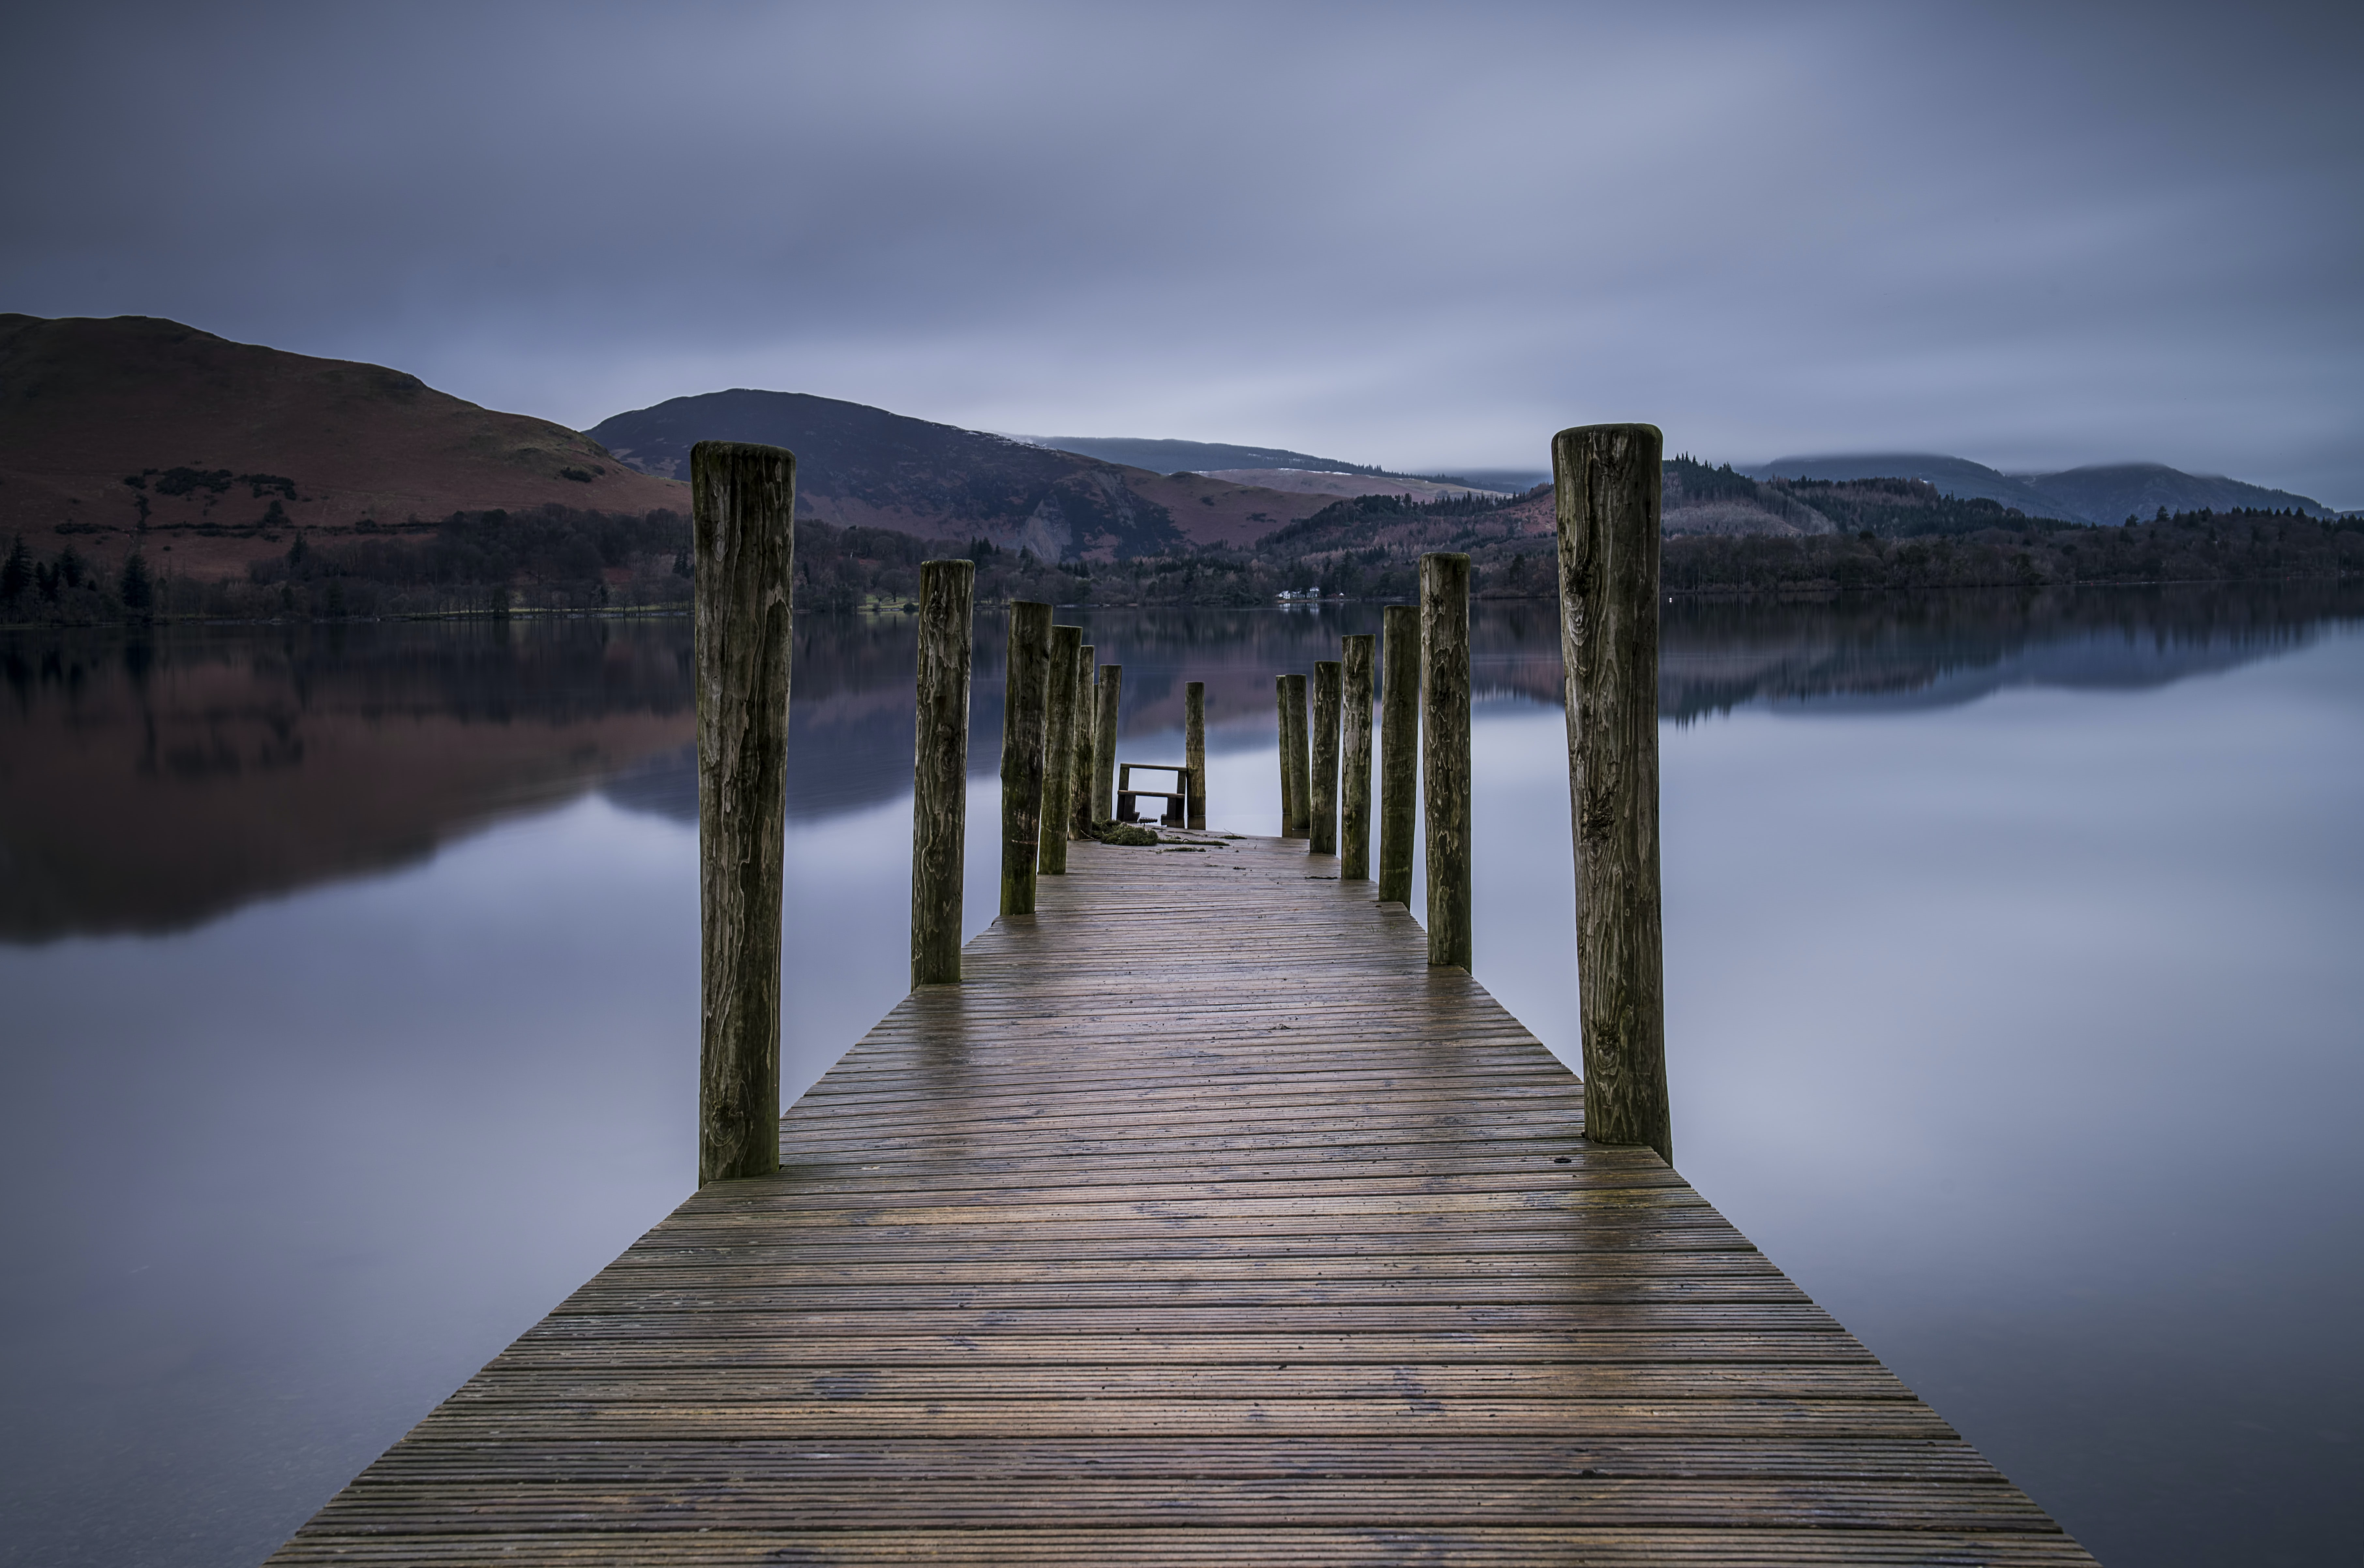 brown wooden dock on body of water overlooking mountains